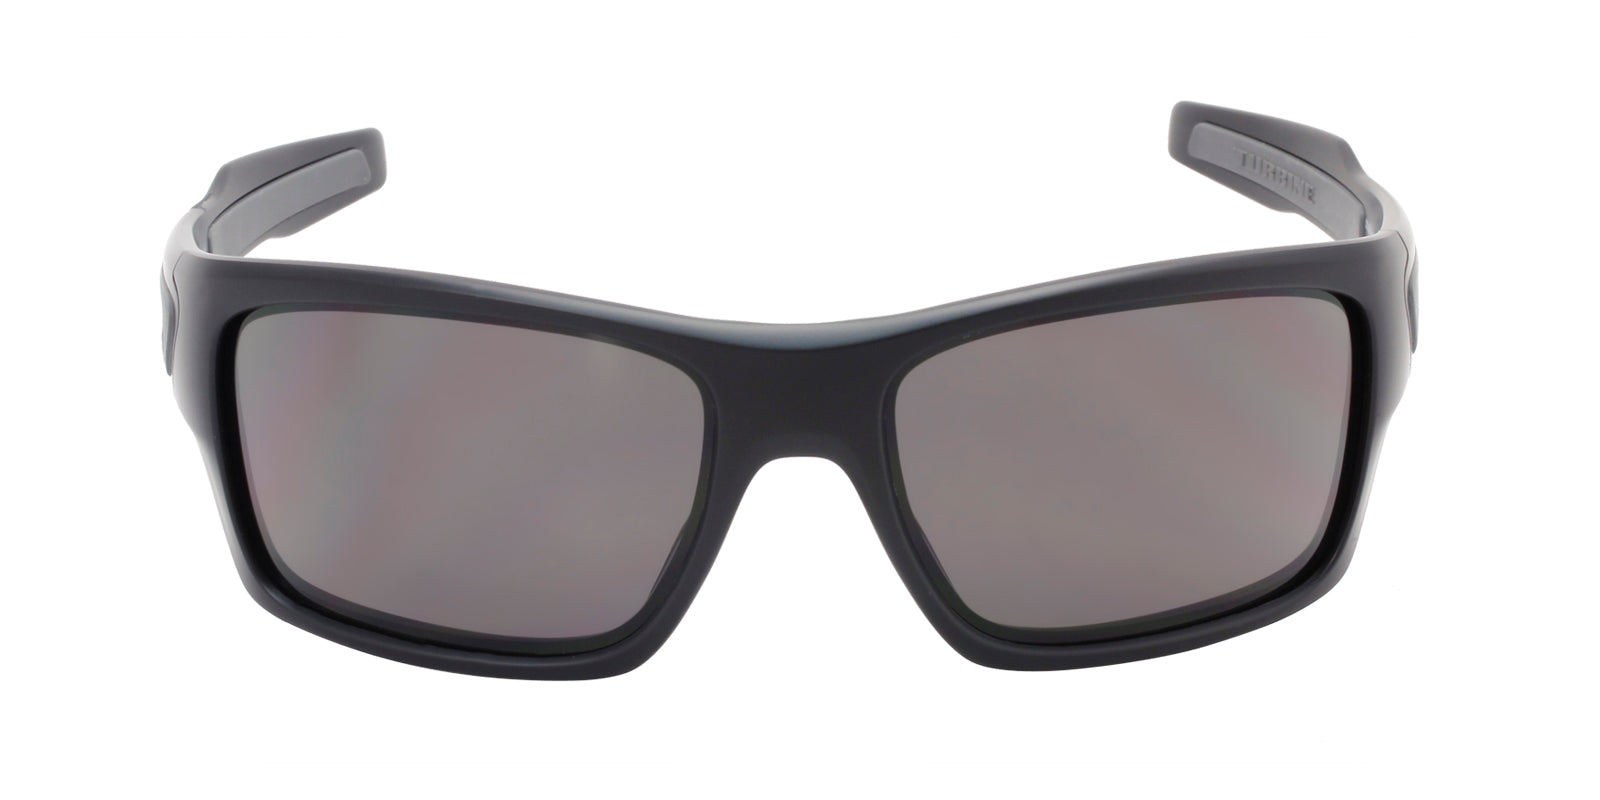 ffa0e49cccb Oakley Turbine Matte Black w  Warm Grey Sunglasses ...